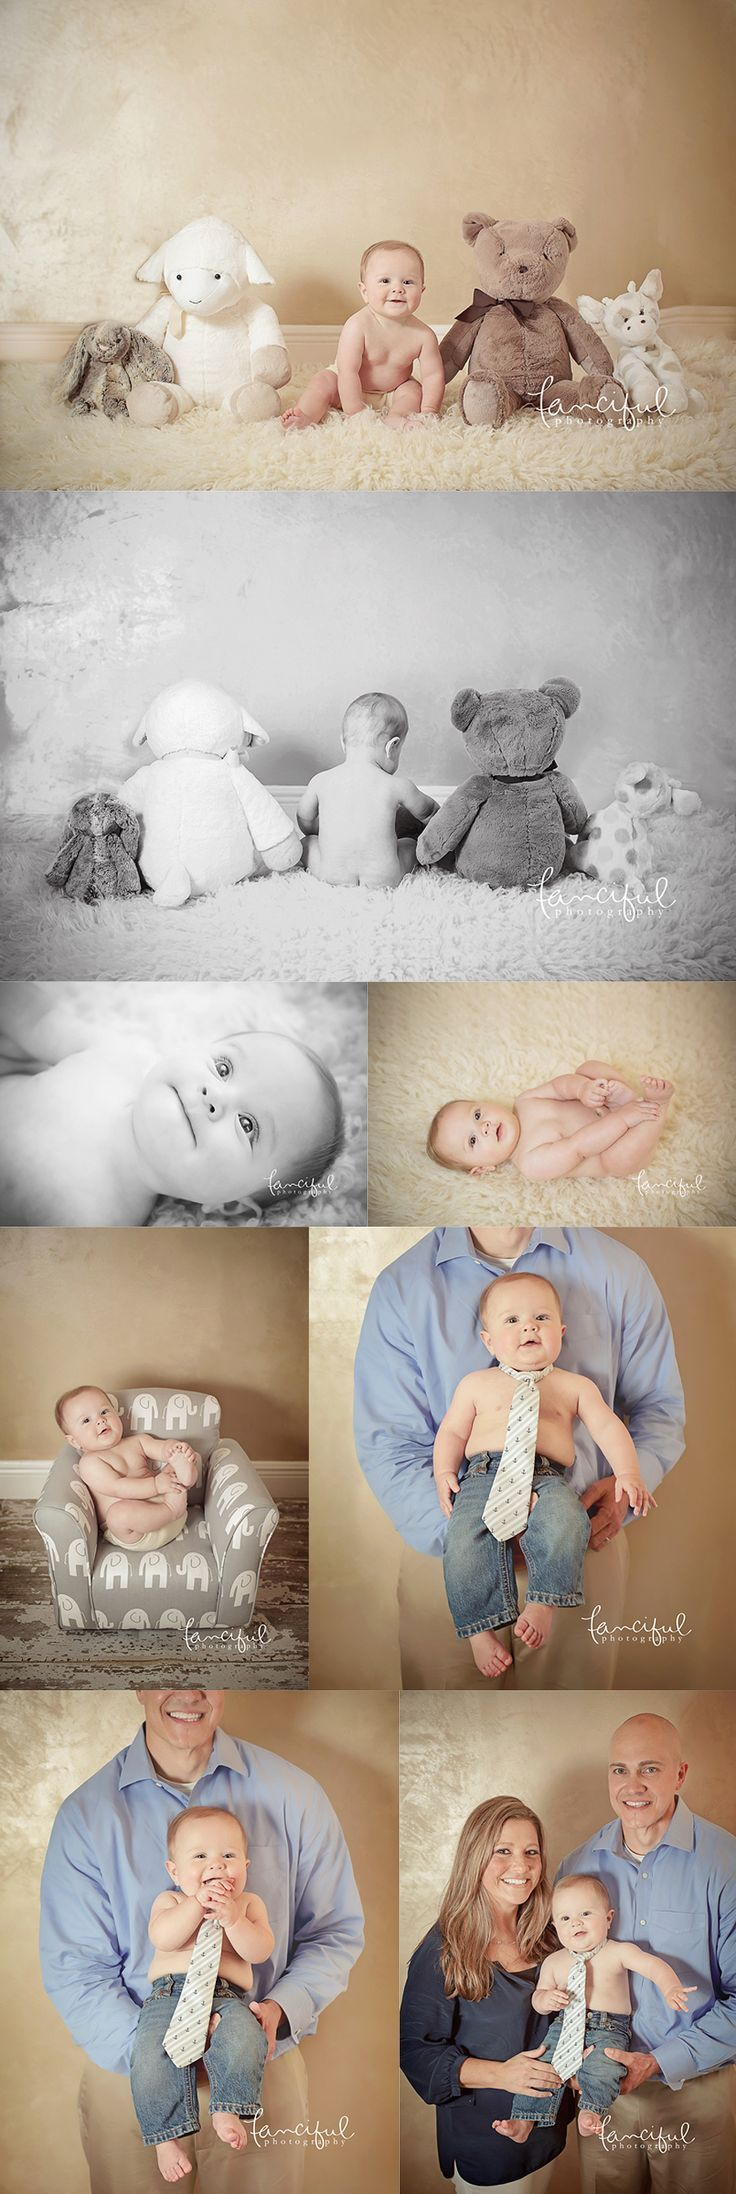 Cached Baby photo ideas 6 months